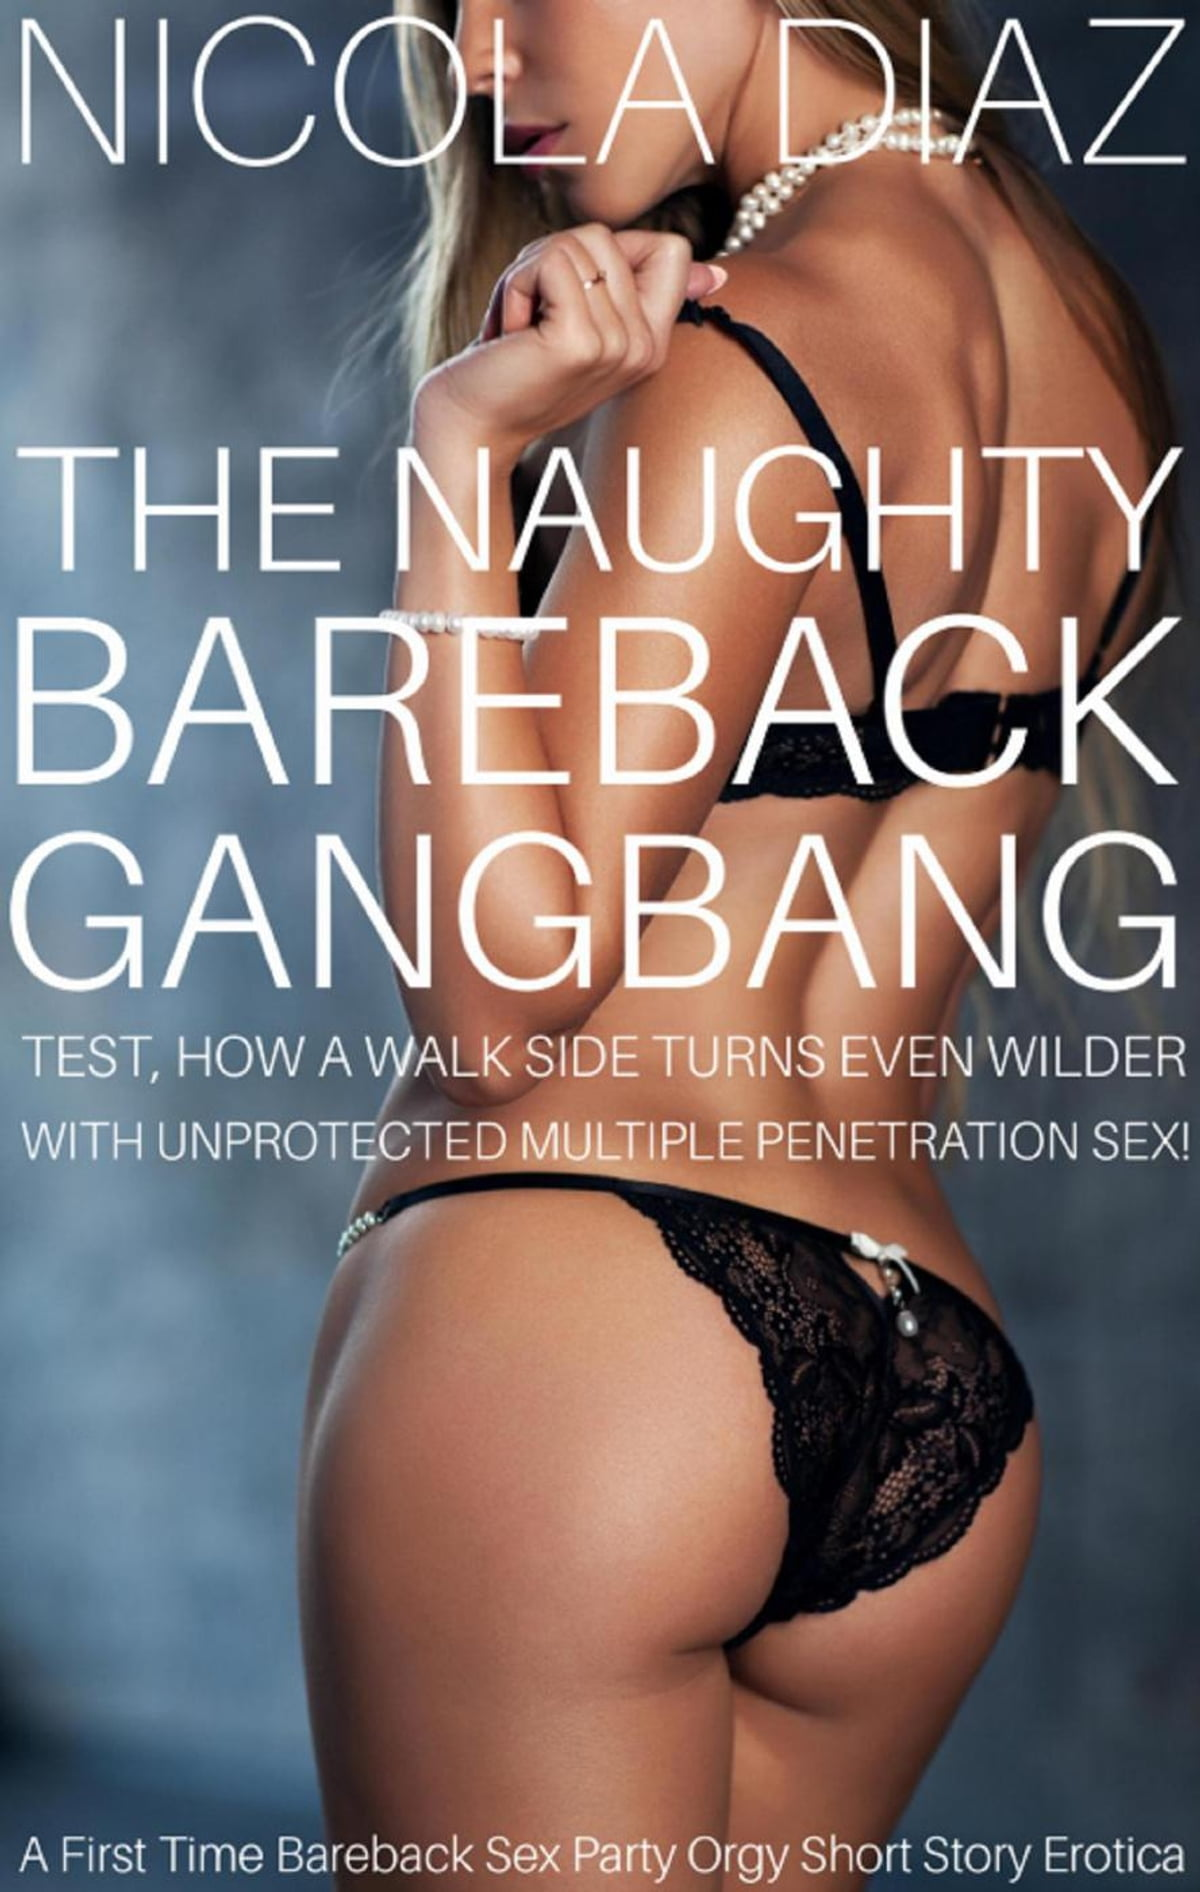 Gangbang Net the naughty bareback gangbang initiation test, how a walk on the wild side  turns even wilder with unprotected multiple penetration sex! - a first time